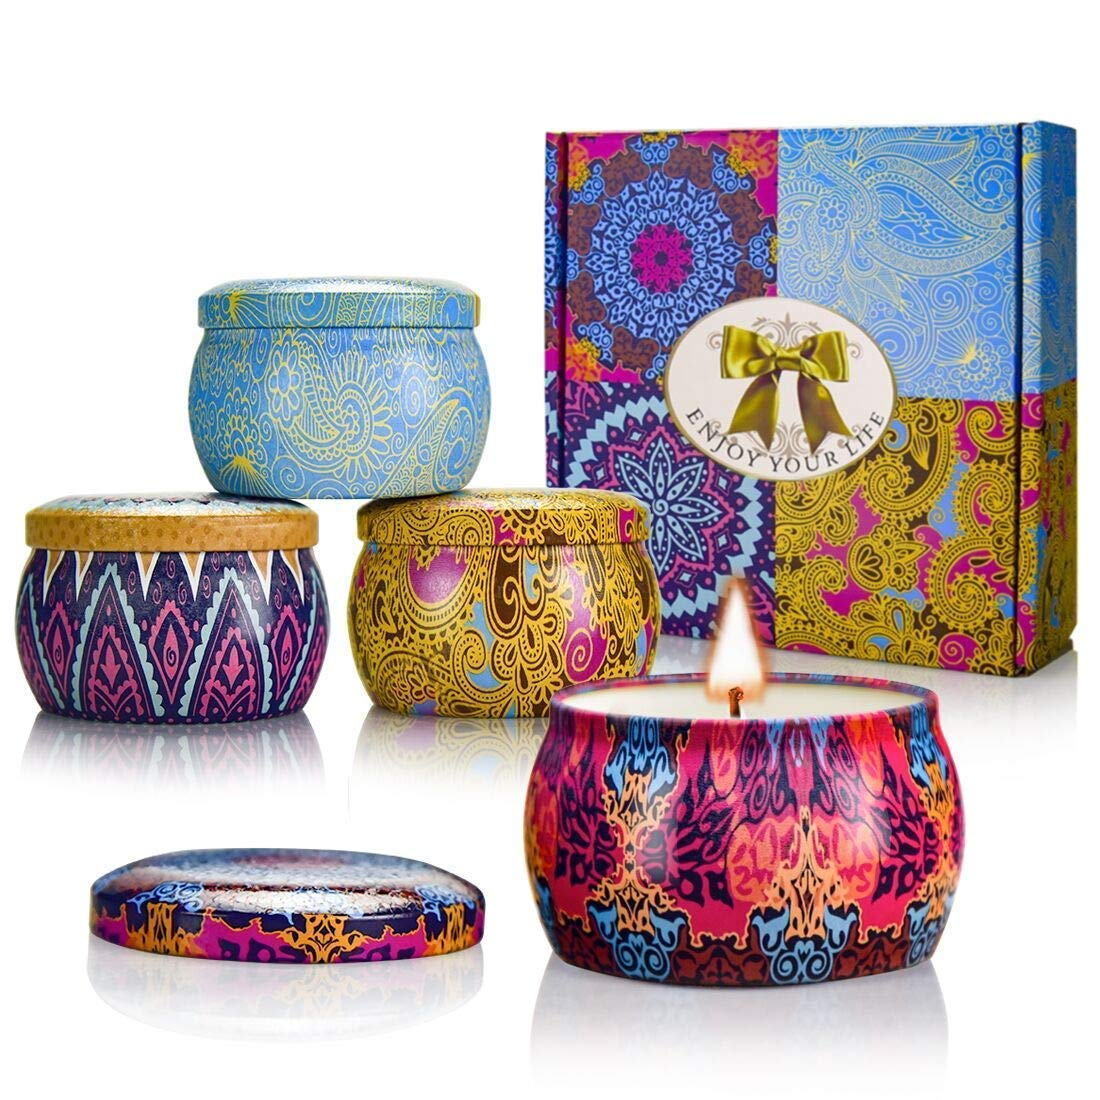 YMING Scented Candles Gift Sets - Natural Soy Wax Votive Candle 4.4 Oz Portable Travel Tin Perfect for Negativity Unwanted Energies Purifies Cleanses & Banishes 4 Pack